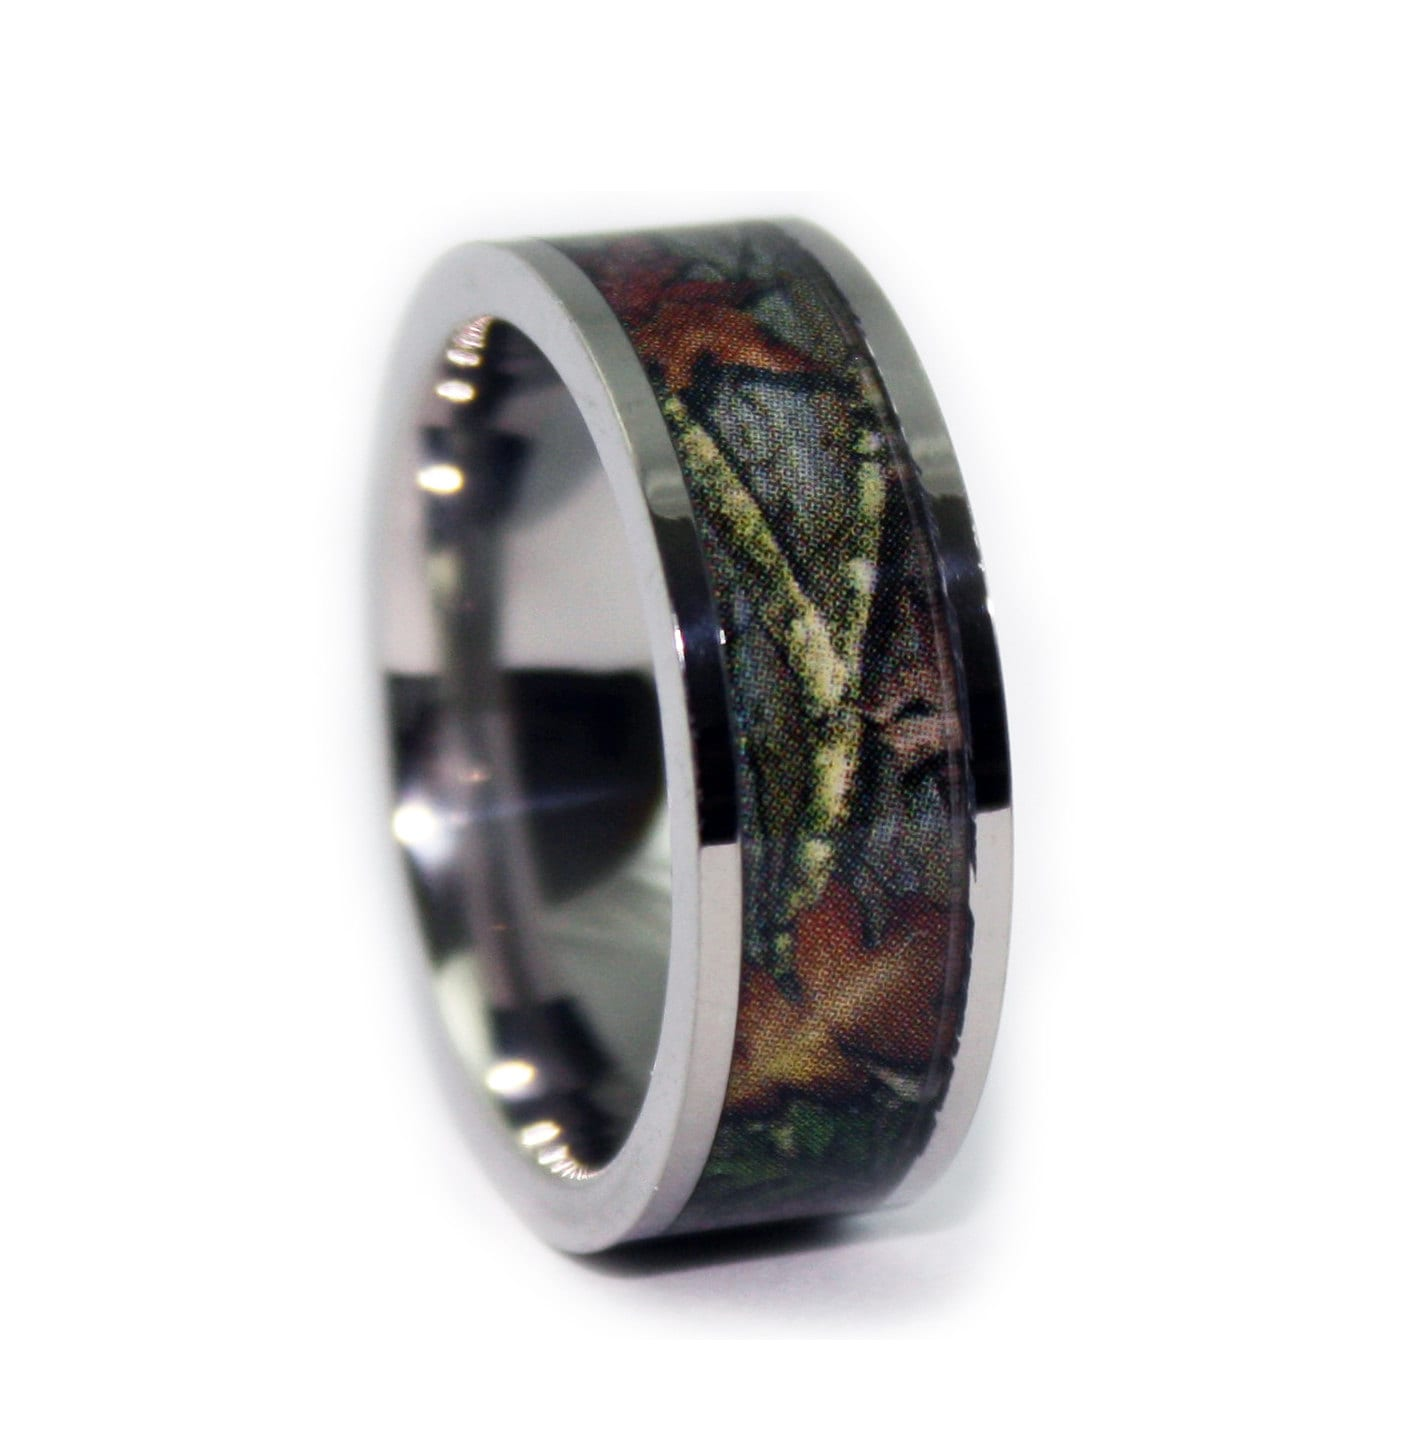 wedding discover leaf realistic bands camo ceramic in her men s ring rings him for